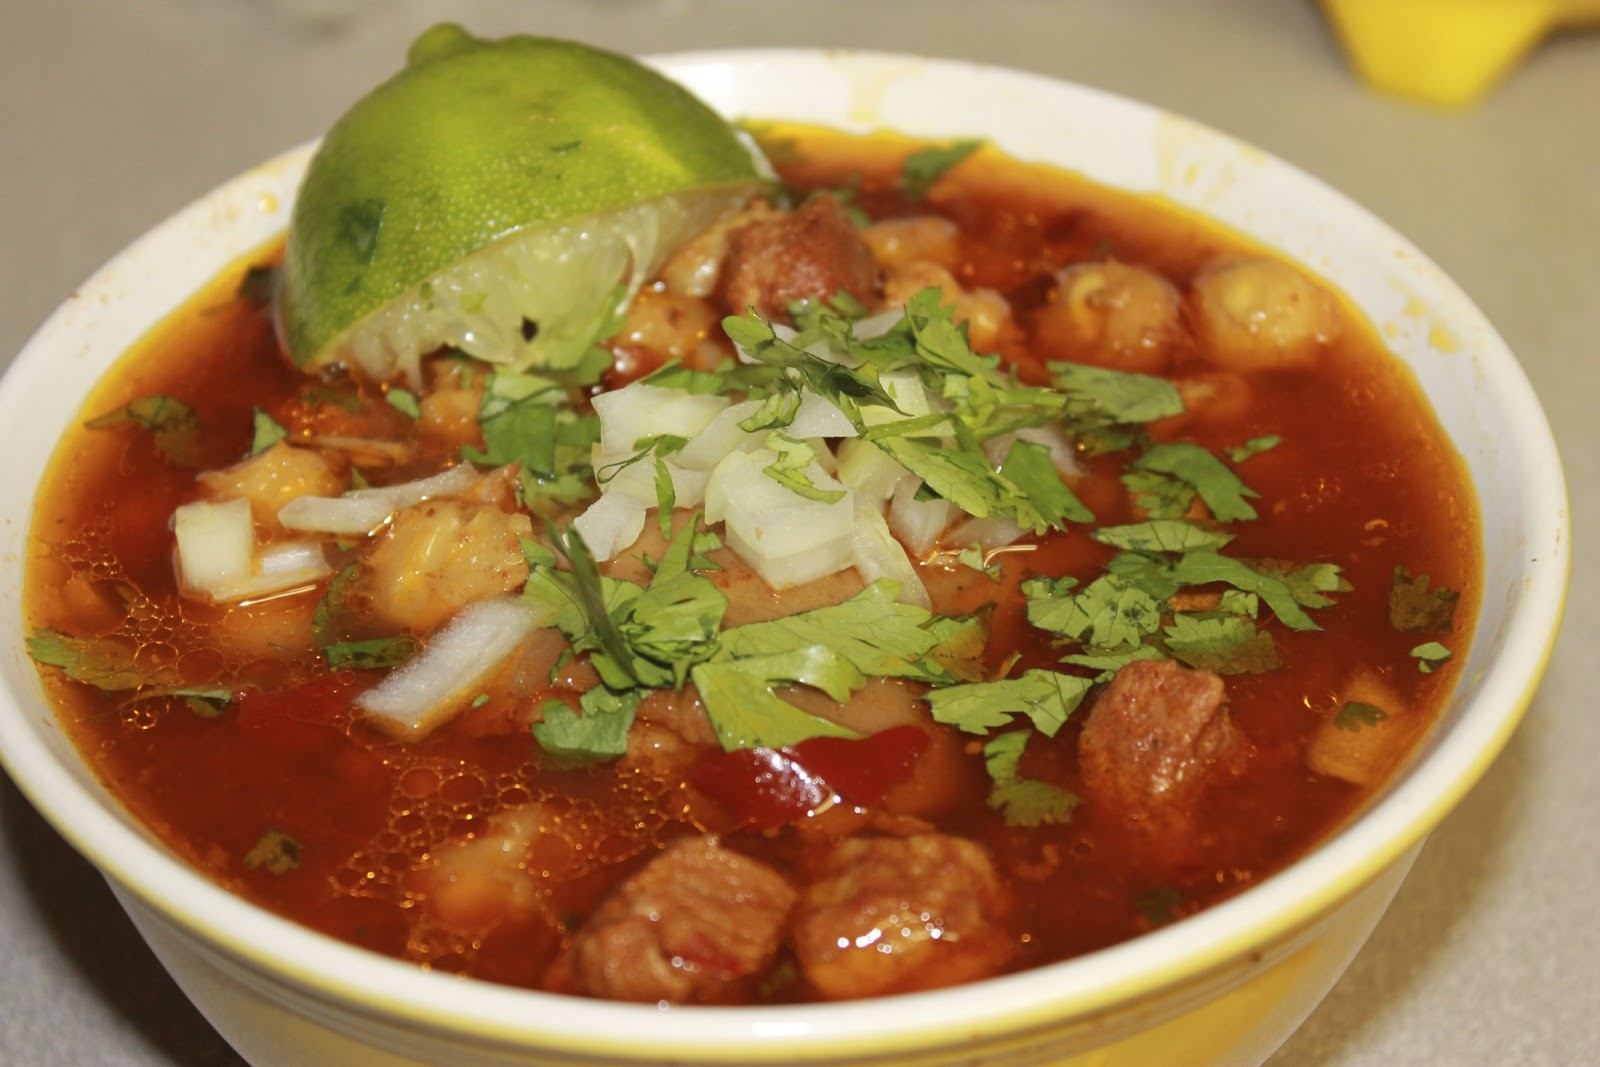 Suburban Habits: Traditional Posole